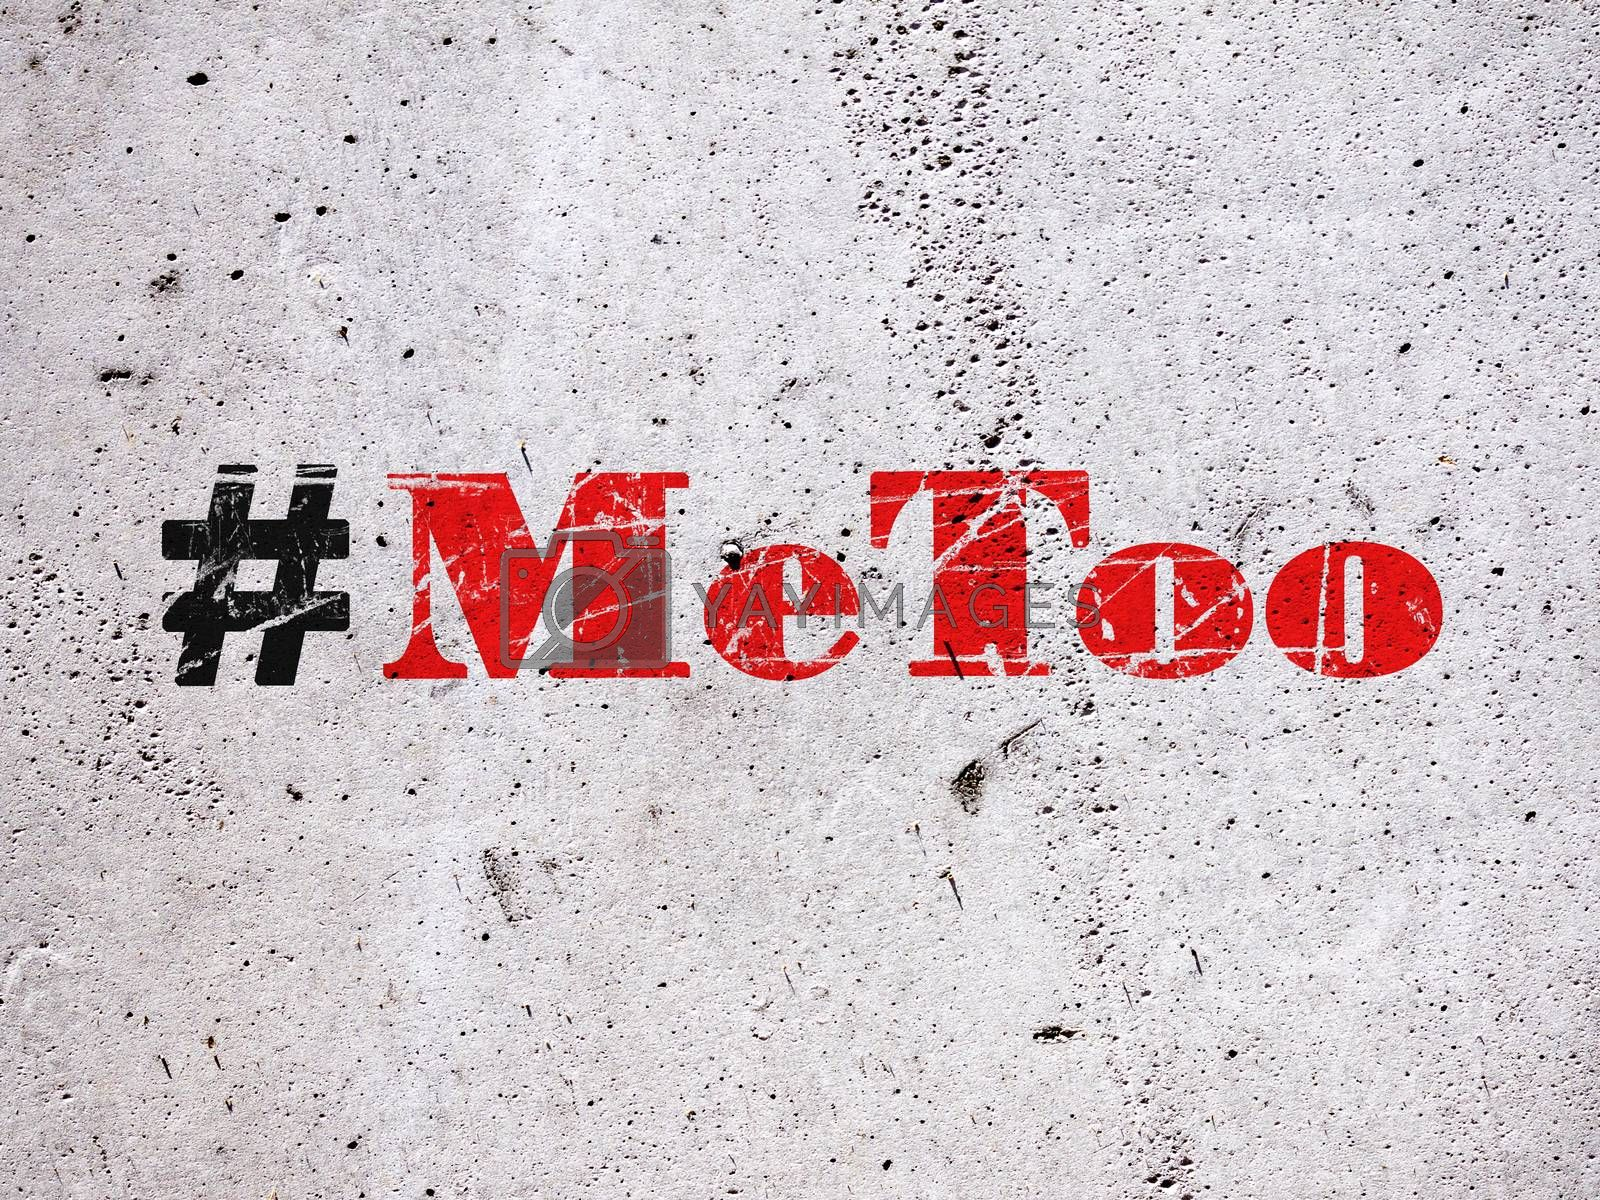 Hashtag Metoo illustration on concrete wall as trending social-media movement against sexual harassment